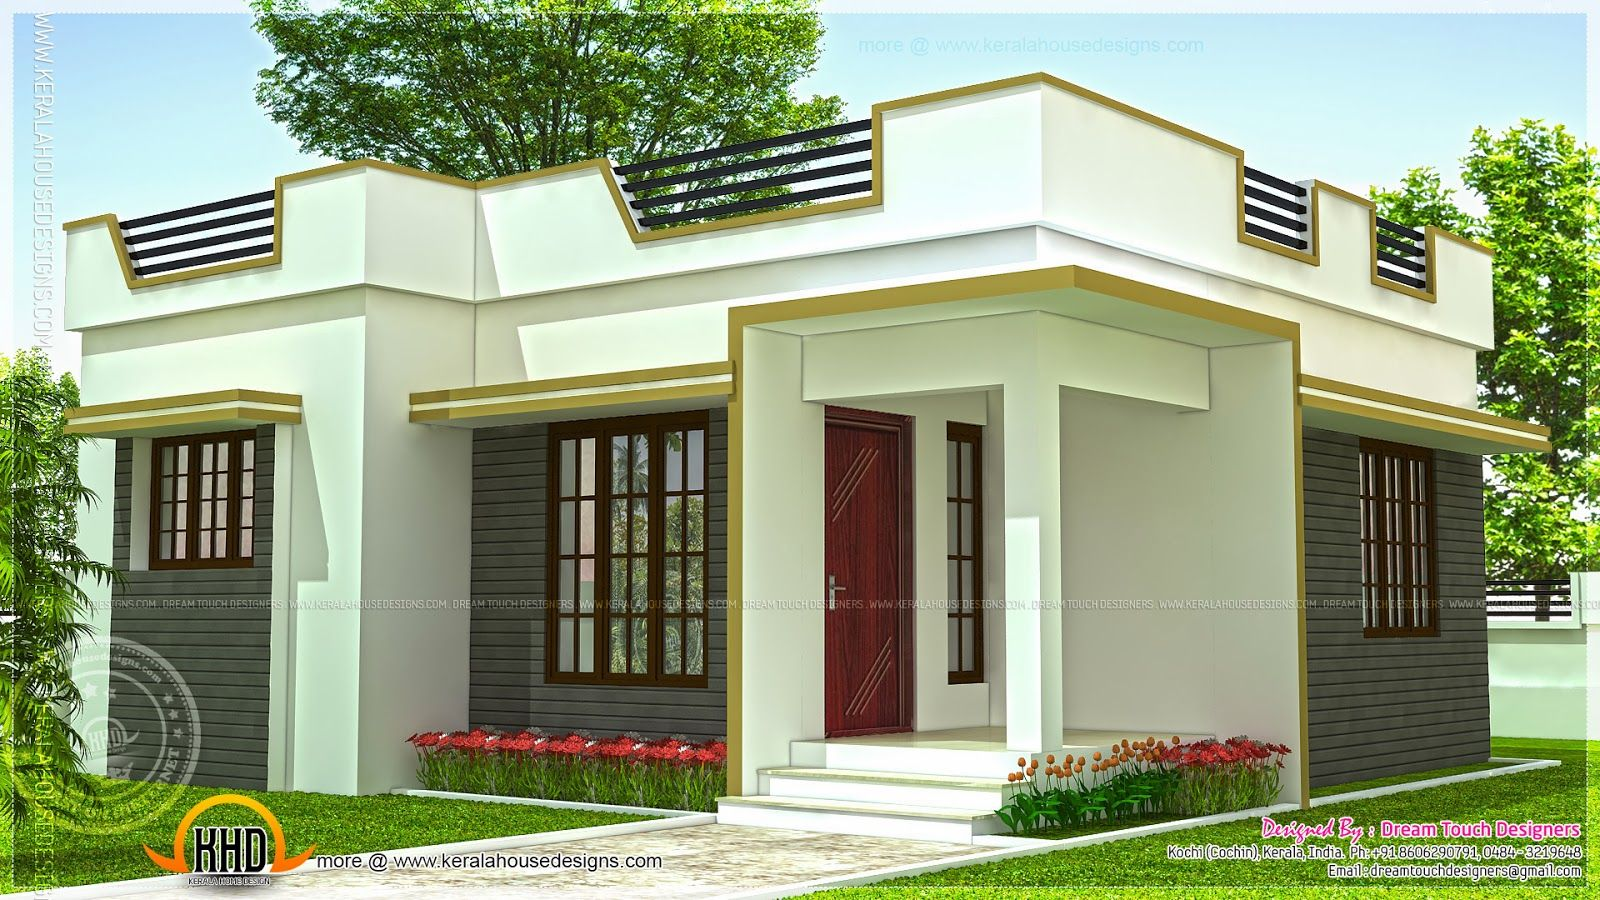 Lately 21 small house design kerala small house for Small house interior and exterior design